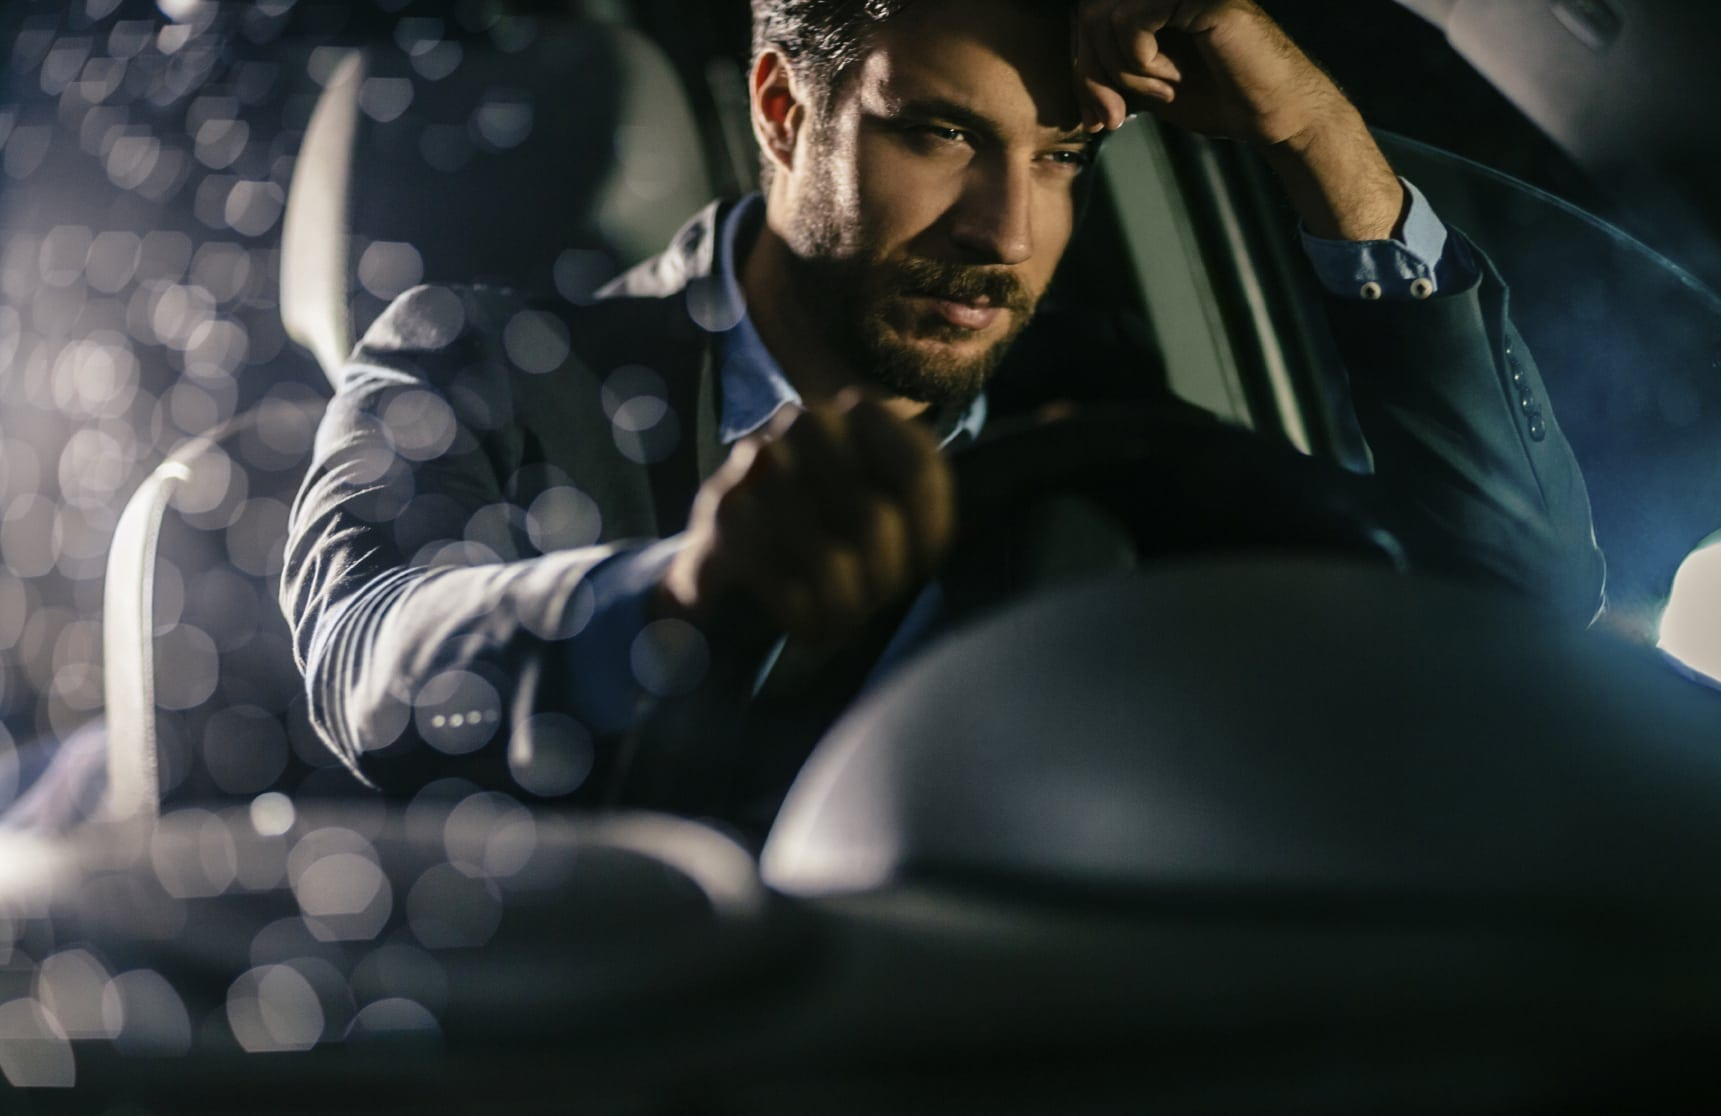 Man Driving With Worried Look On His Face Stock Photo